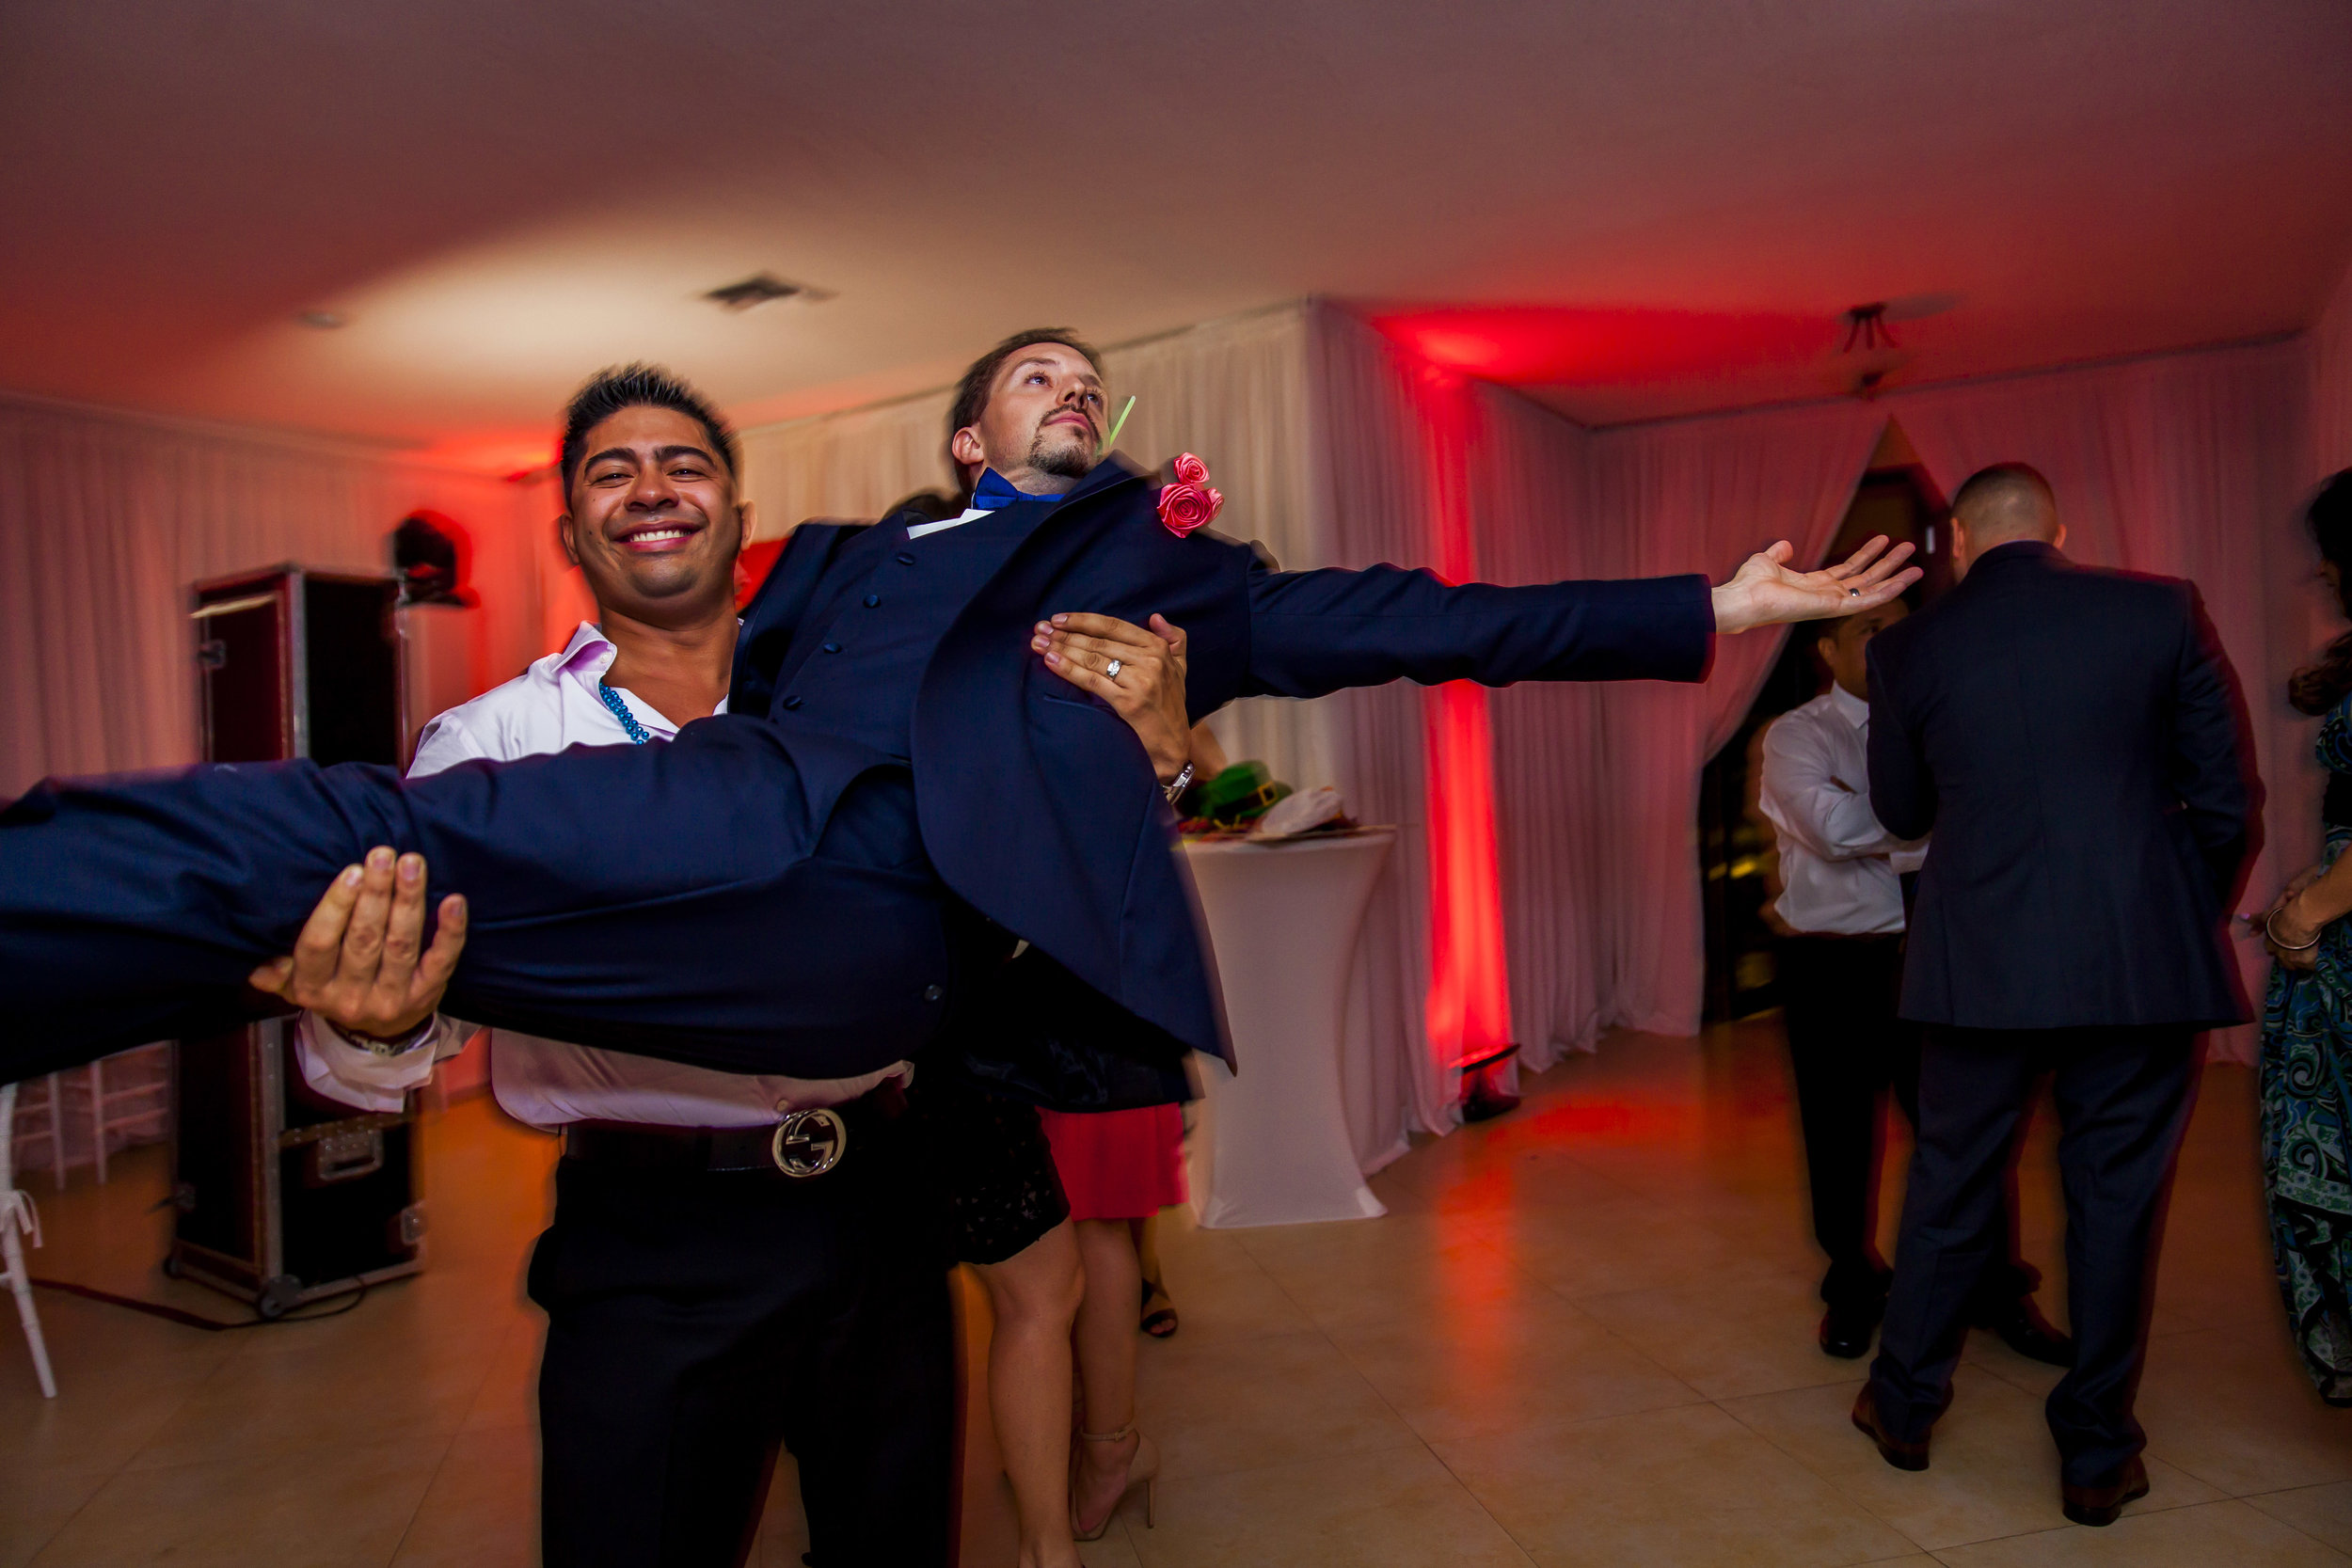 longans-place-miami-wedding-4204.jpg